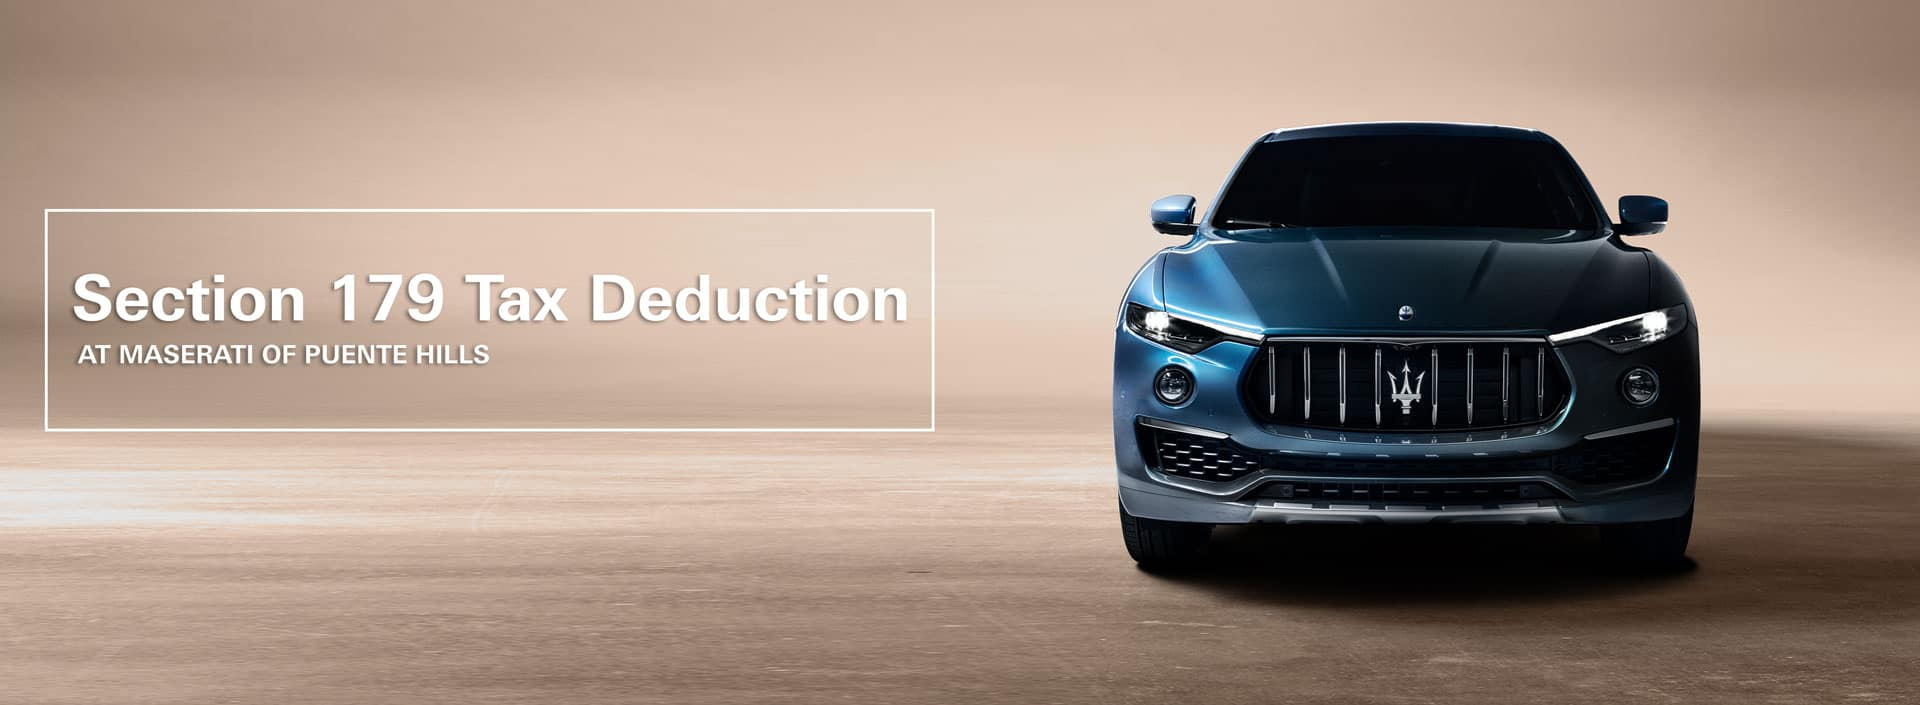 section 179 tax deduction for your maserati